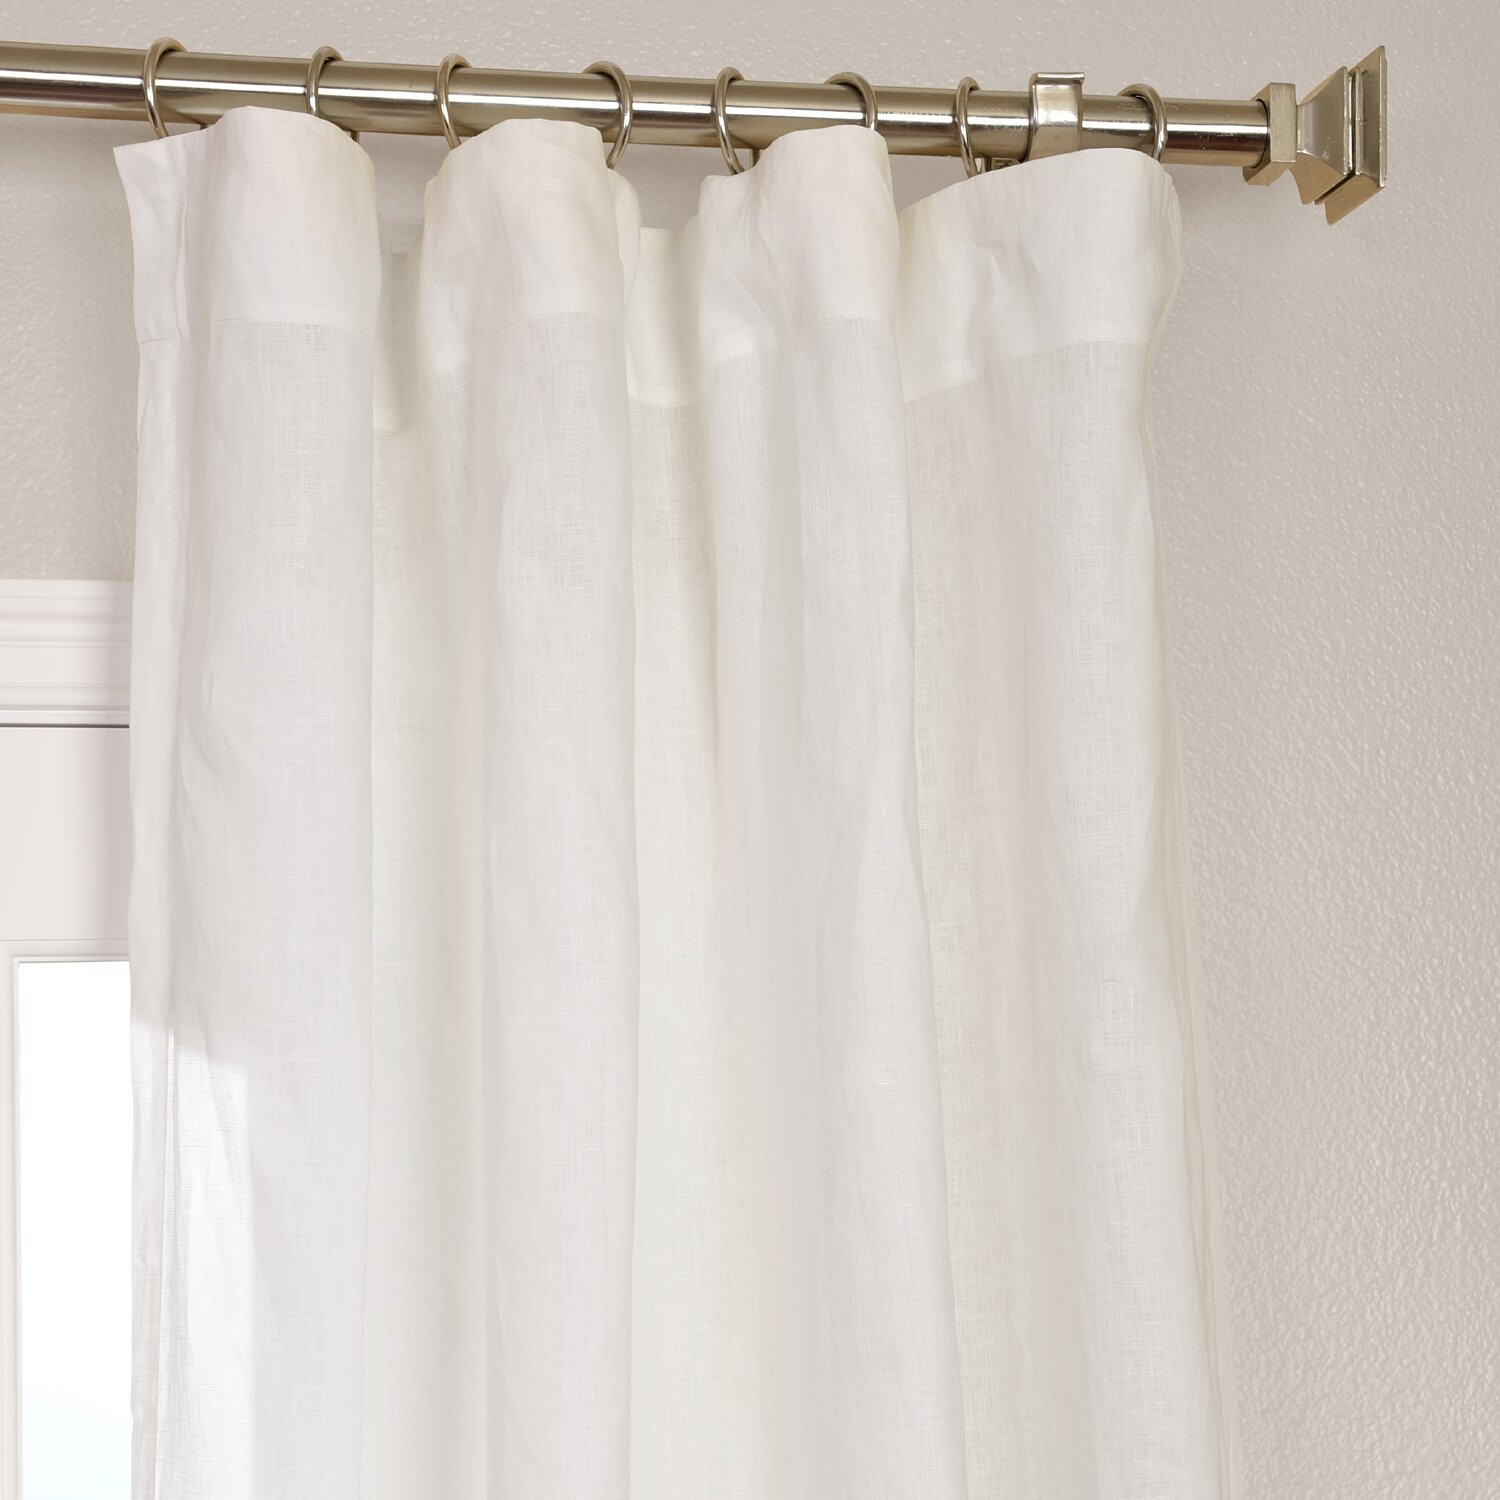 Half Price Drapes Signature Solid Sheer Rod Pocket Single Curtain - White linen shower curtain